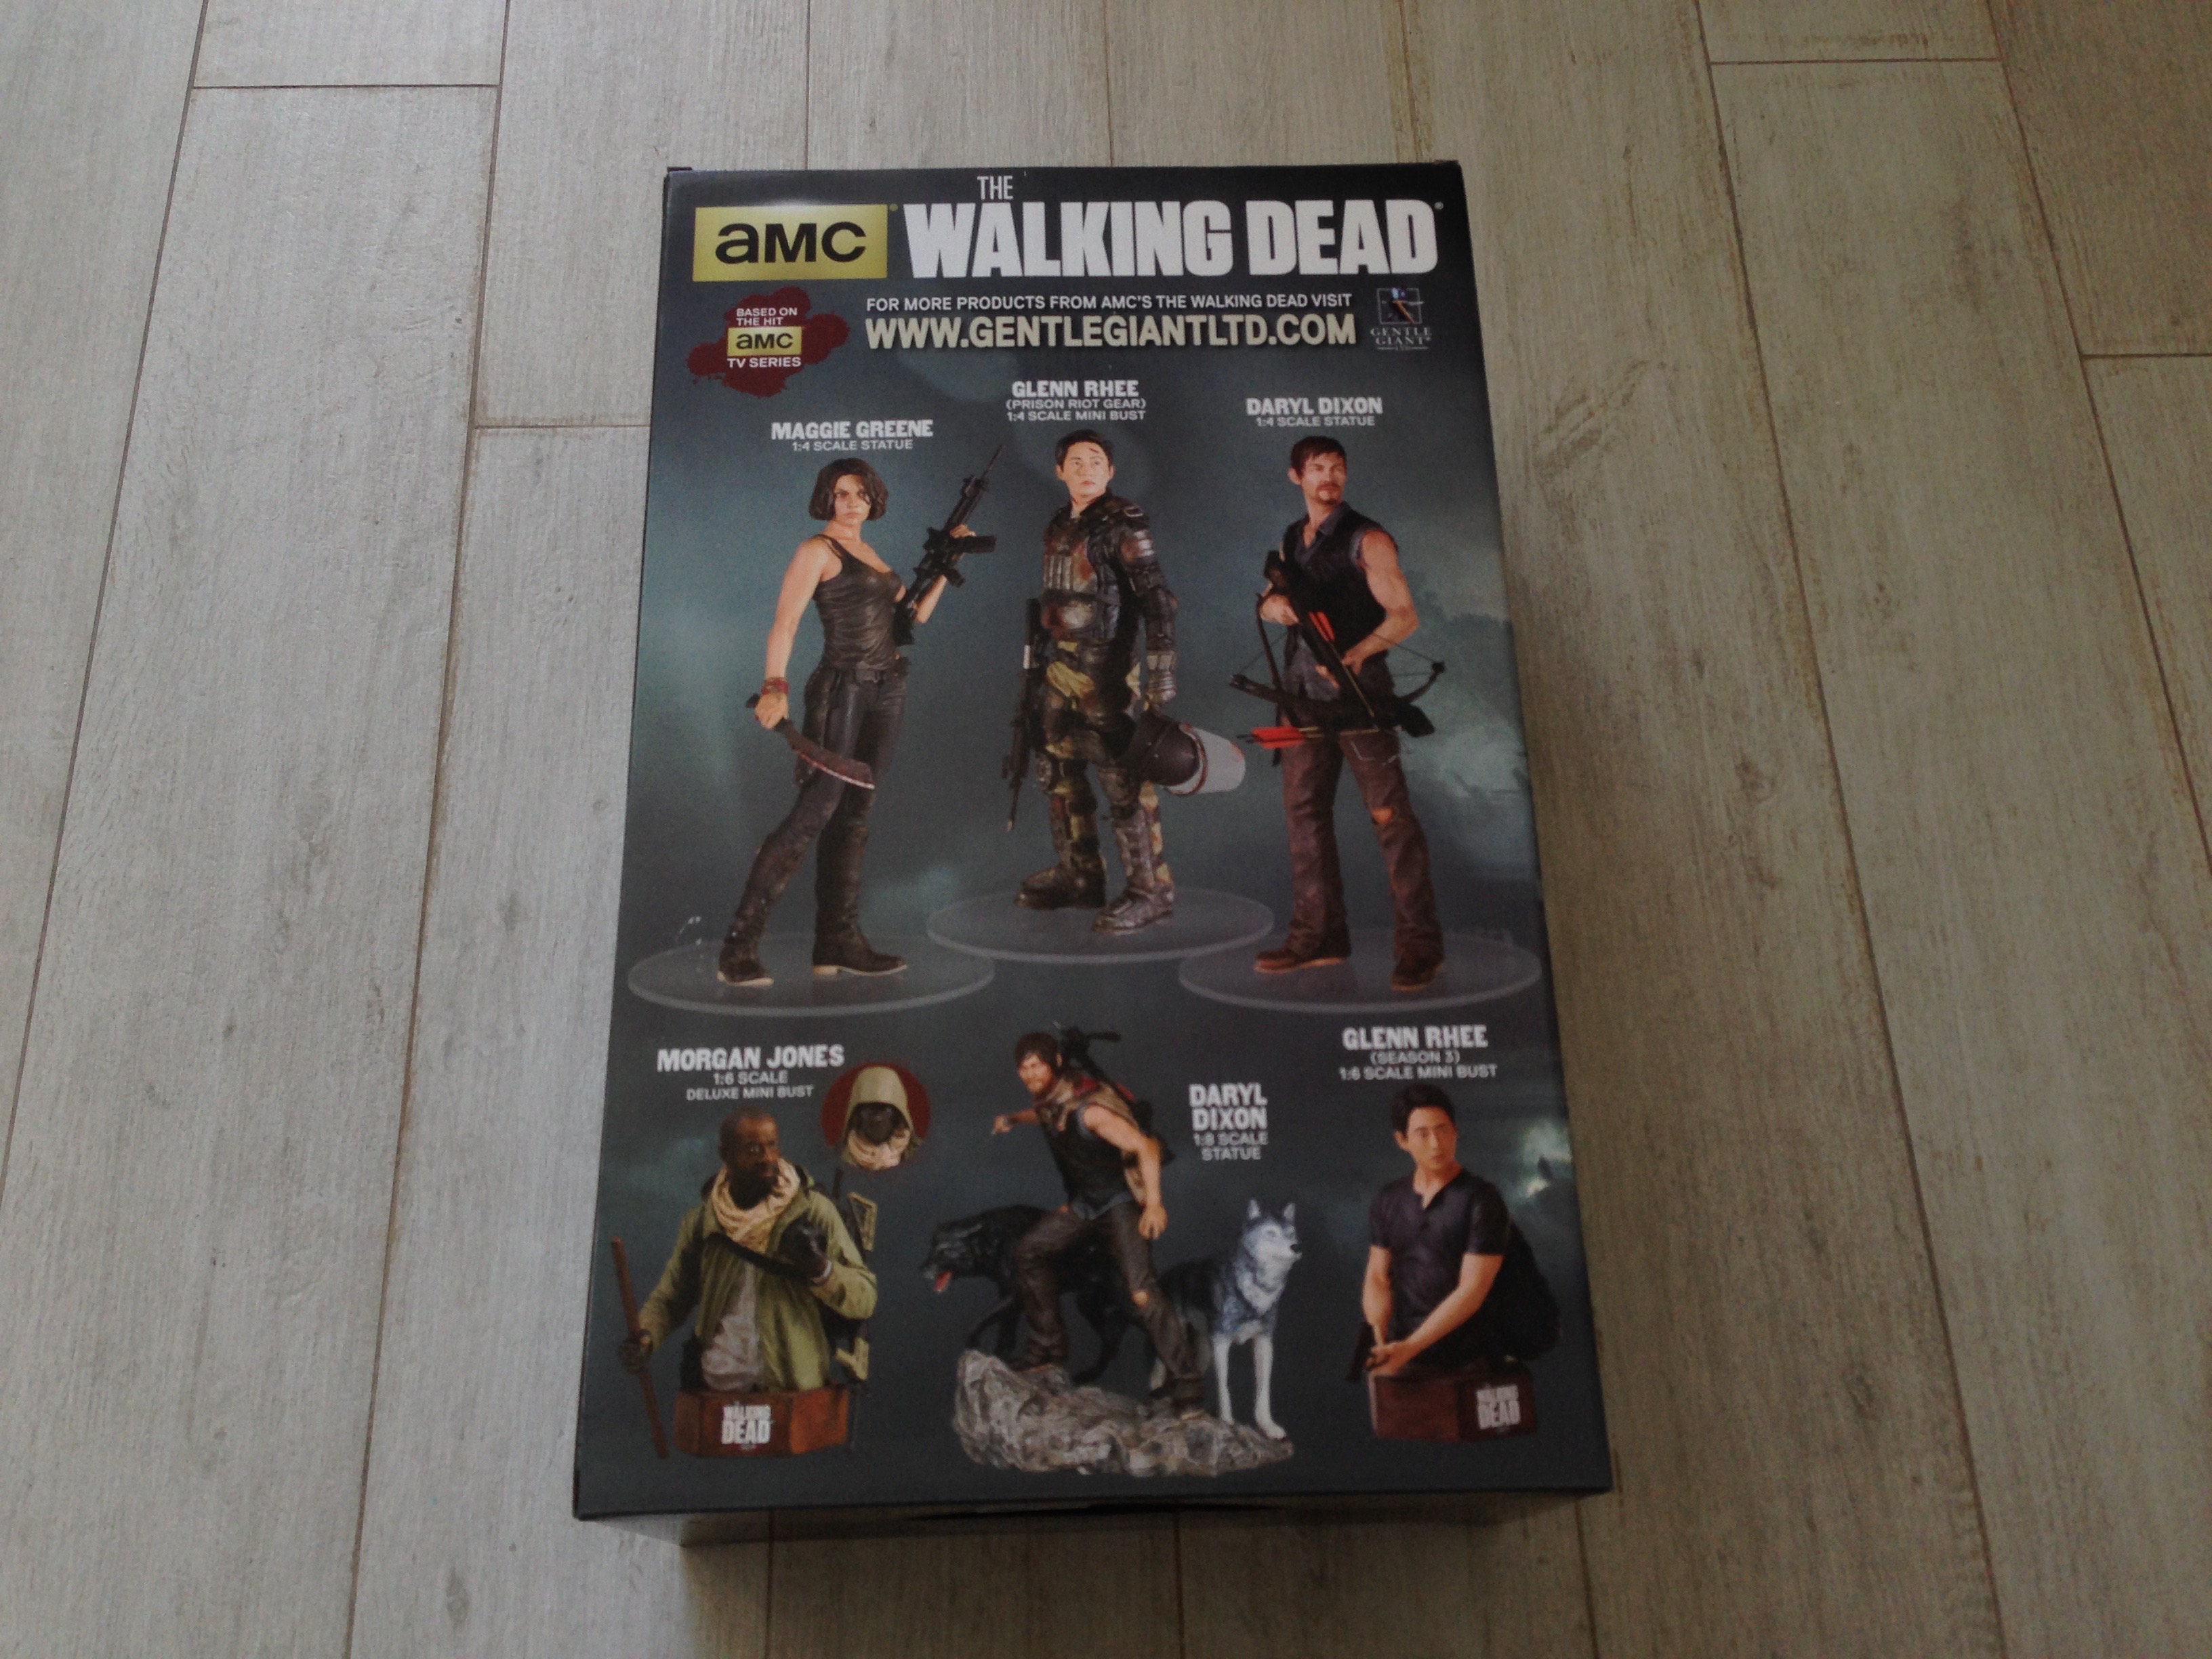 gentle-giant-the-walking-dead-rick-grimes-statue-toyslife-review-03